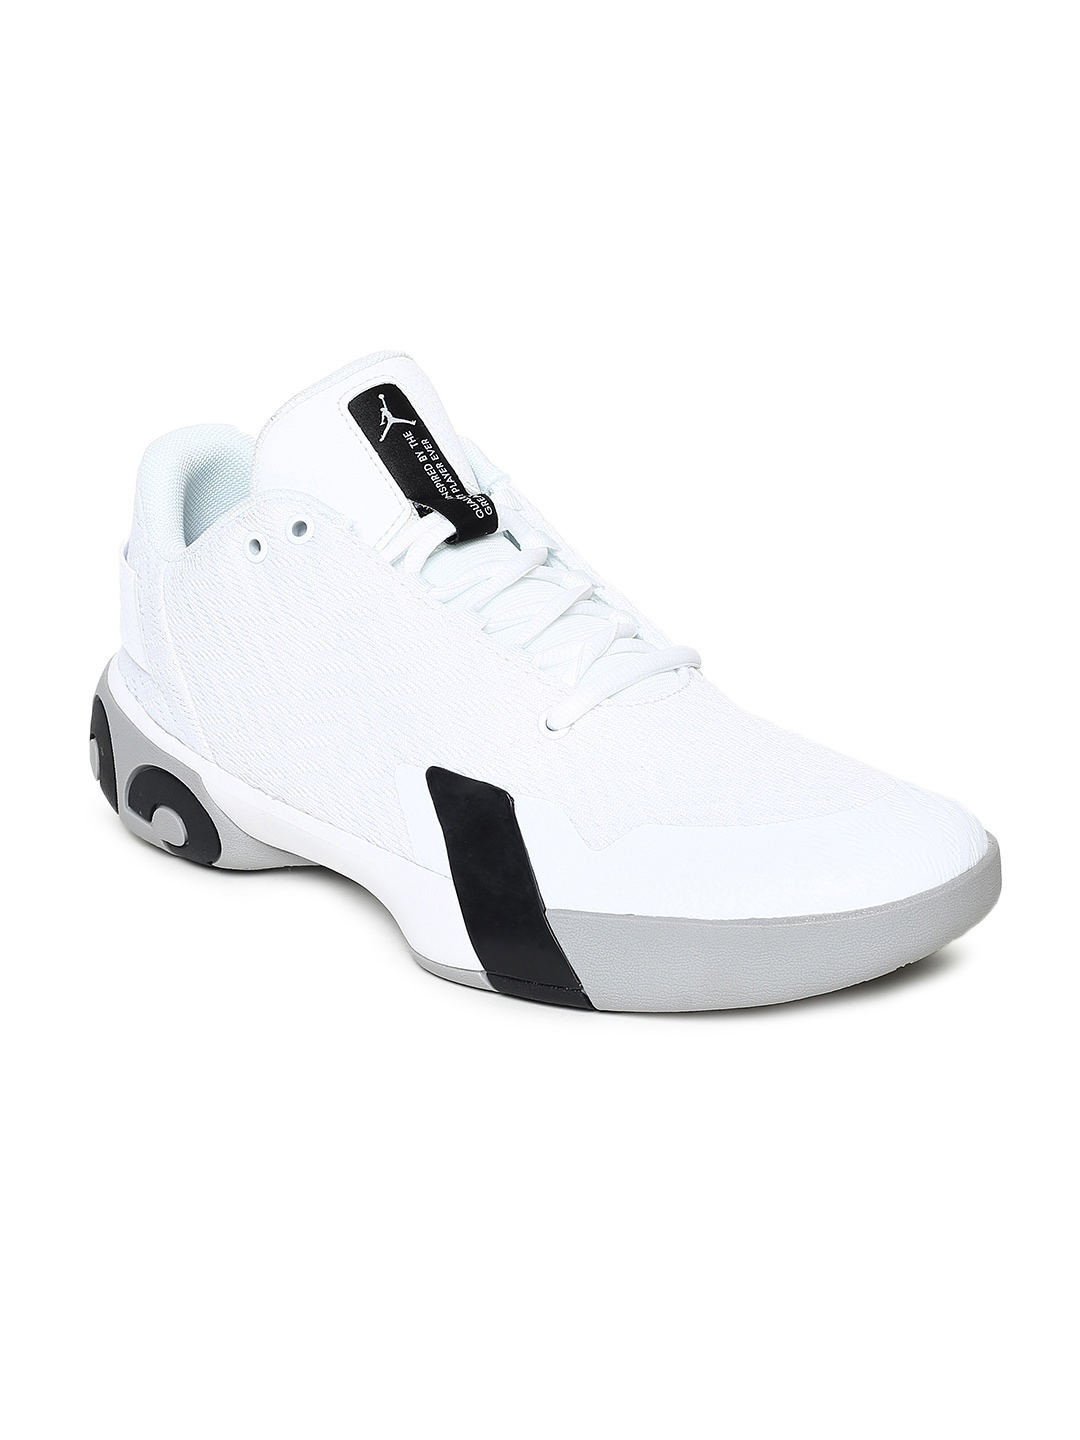 a98a6b462ae Jordan Men - Buy Jordan Men online in India